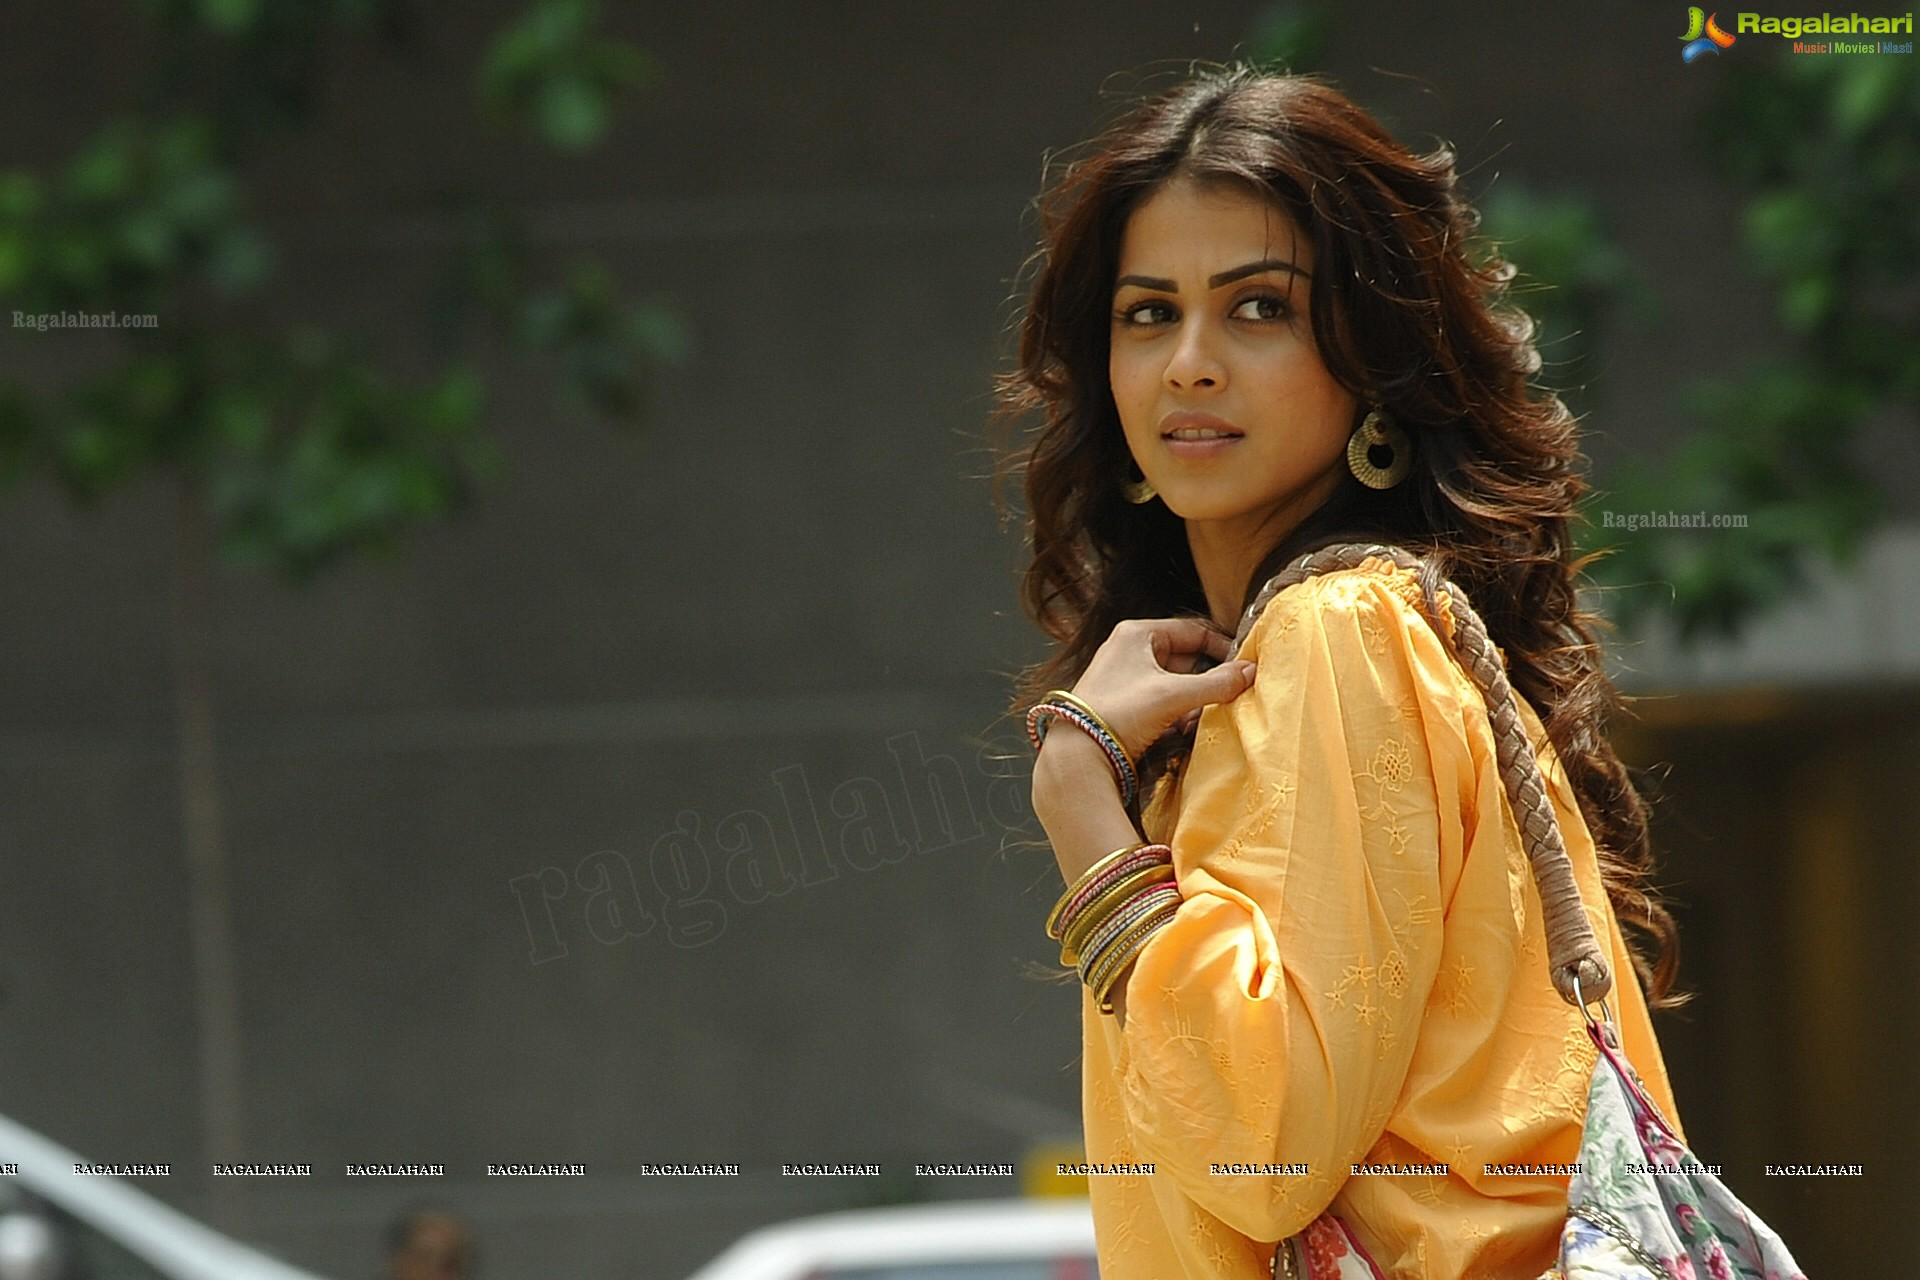 genelia (hd) image 6 | tollywood actress photos,stills, heroines